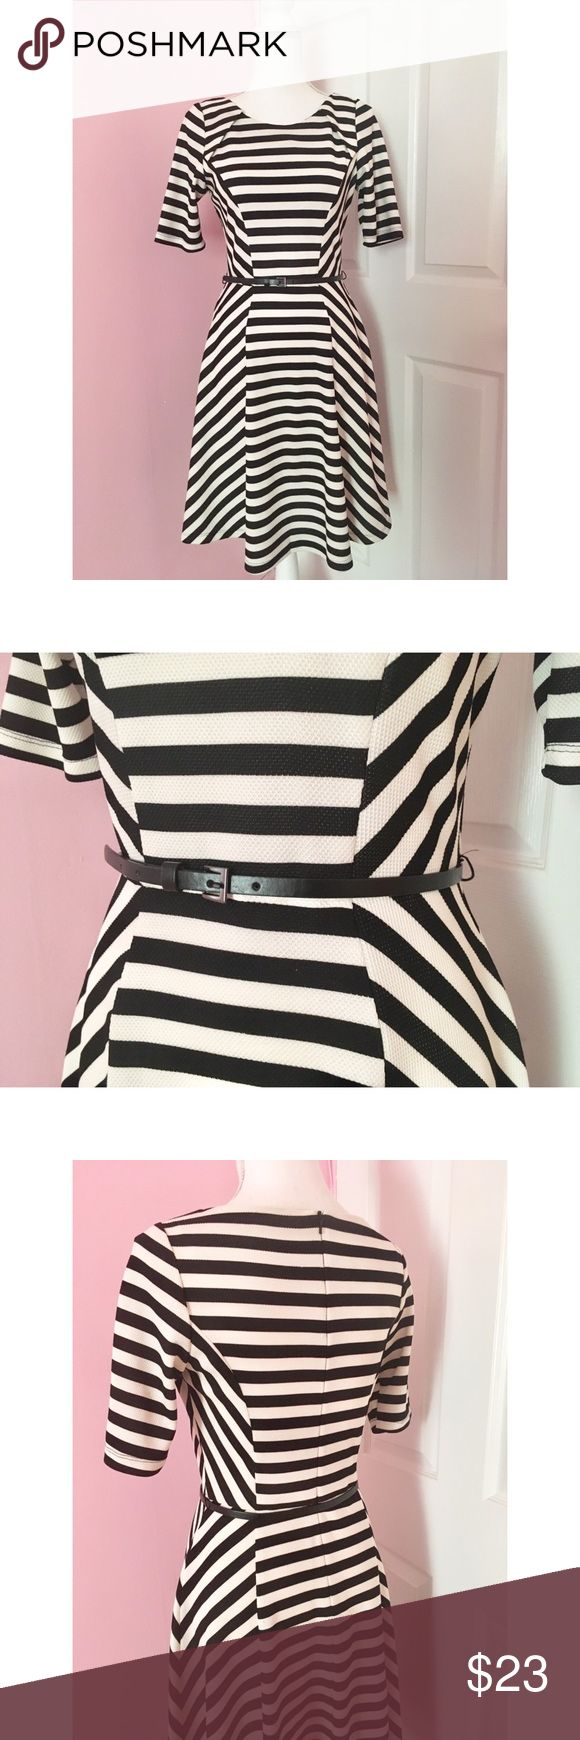 ✨SALE! Black & White Striped Dress  Size 10   Great Condition  ❌ Sorry No Holds/Trades/PayPal  ✅ Negotiable On Price   W BHS (Britain Home Store) Black and White Striped Dress. Beautiful dress in like new condition. Size 10 in UK which fits smaller (approximate size 6 in US) Comes with belt.   Model Size Bust  Waist  Hips W Dresses